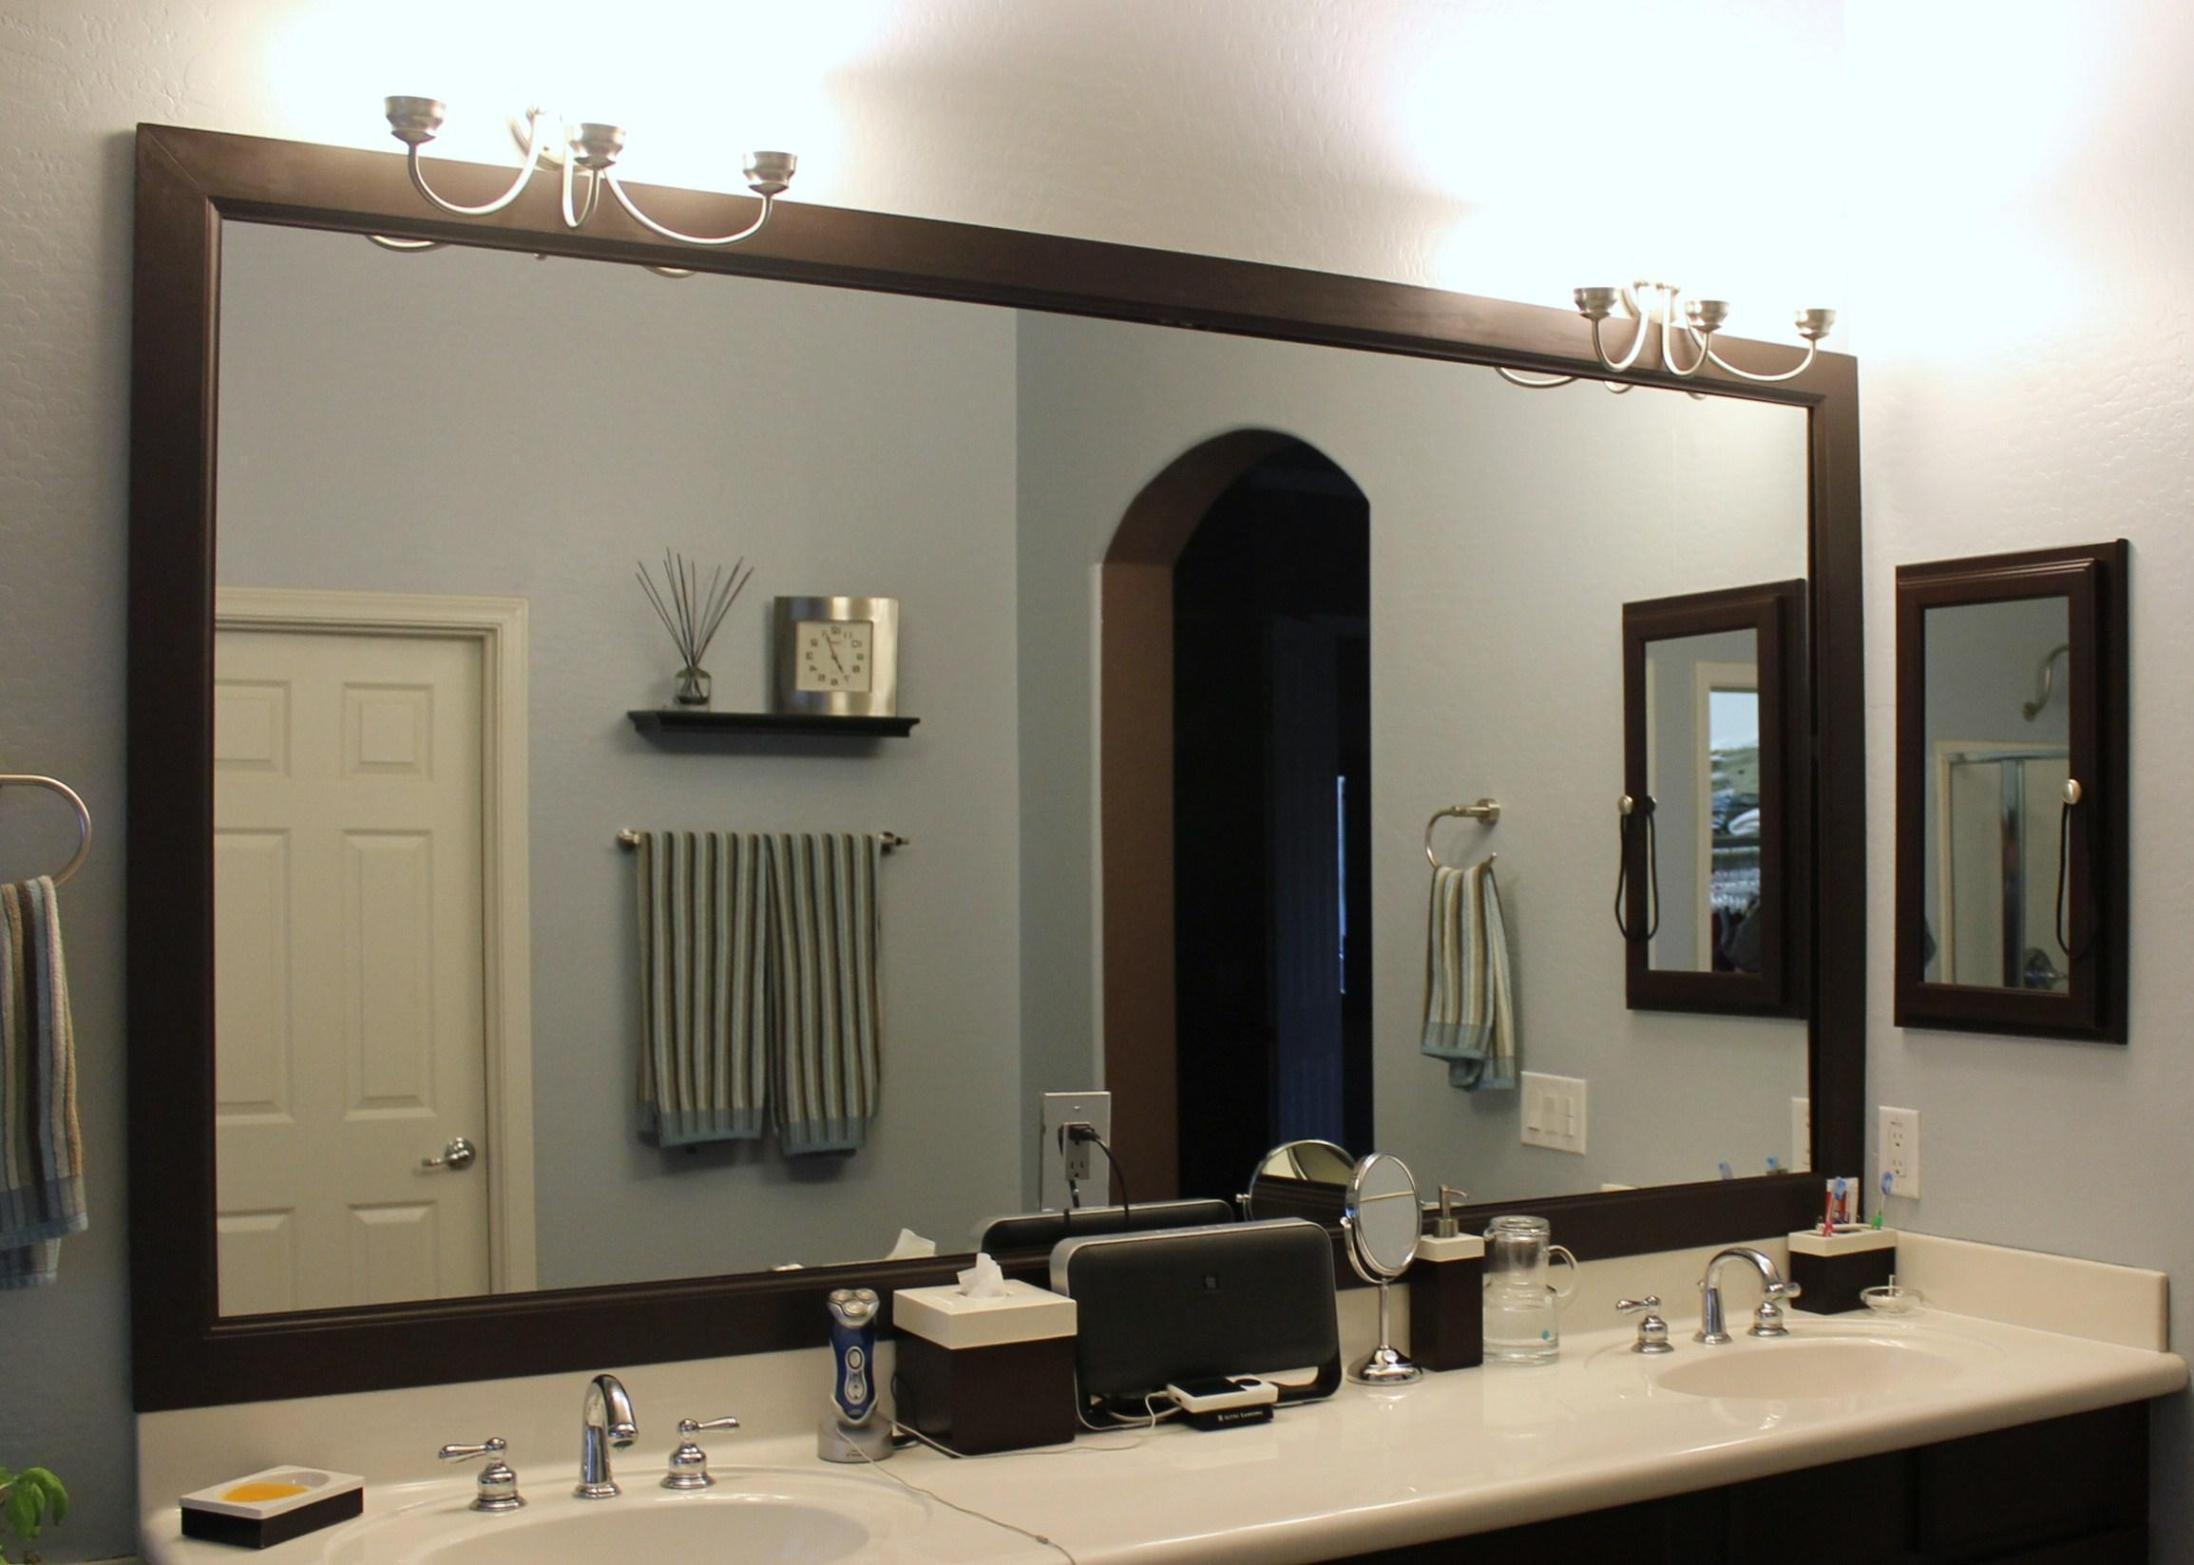 Framed Mirrors Bathroom Vanity Mirrors Large Mirror Decorative Regarding Decorative Mirrors For Bathroom Vanity (View 18 of 20)